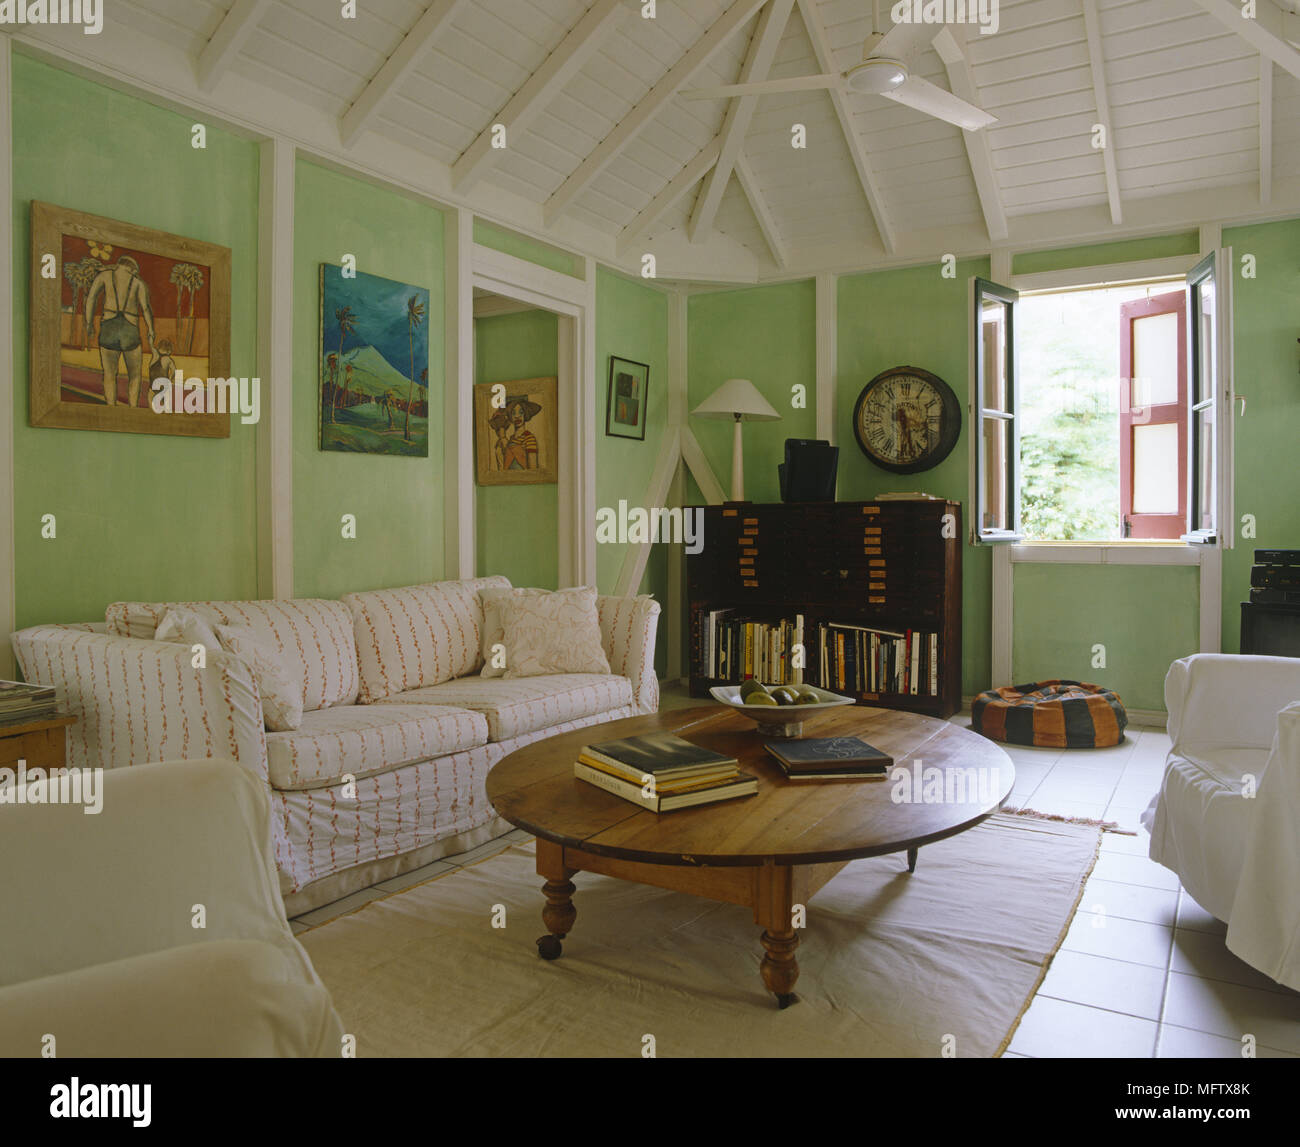 Sitting room with tiled floor wooden ceiling and armchairs with paintings on the wall Stock Photo